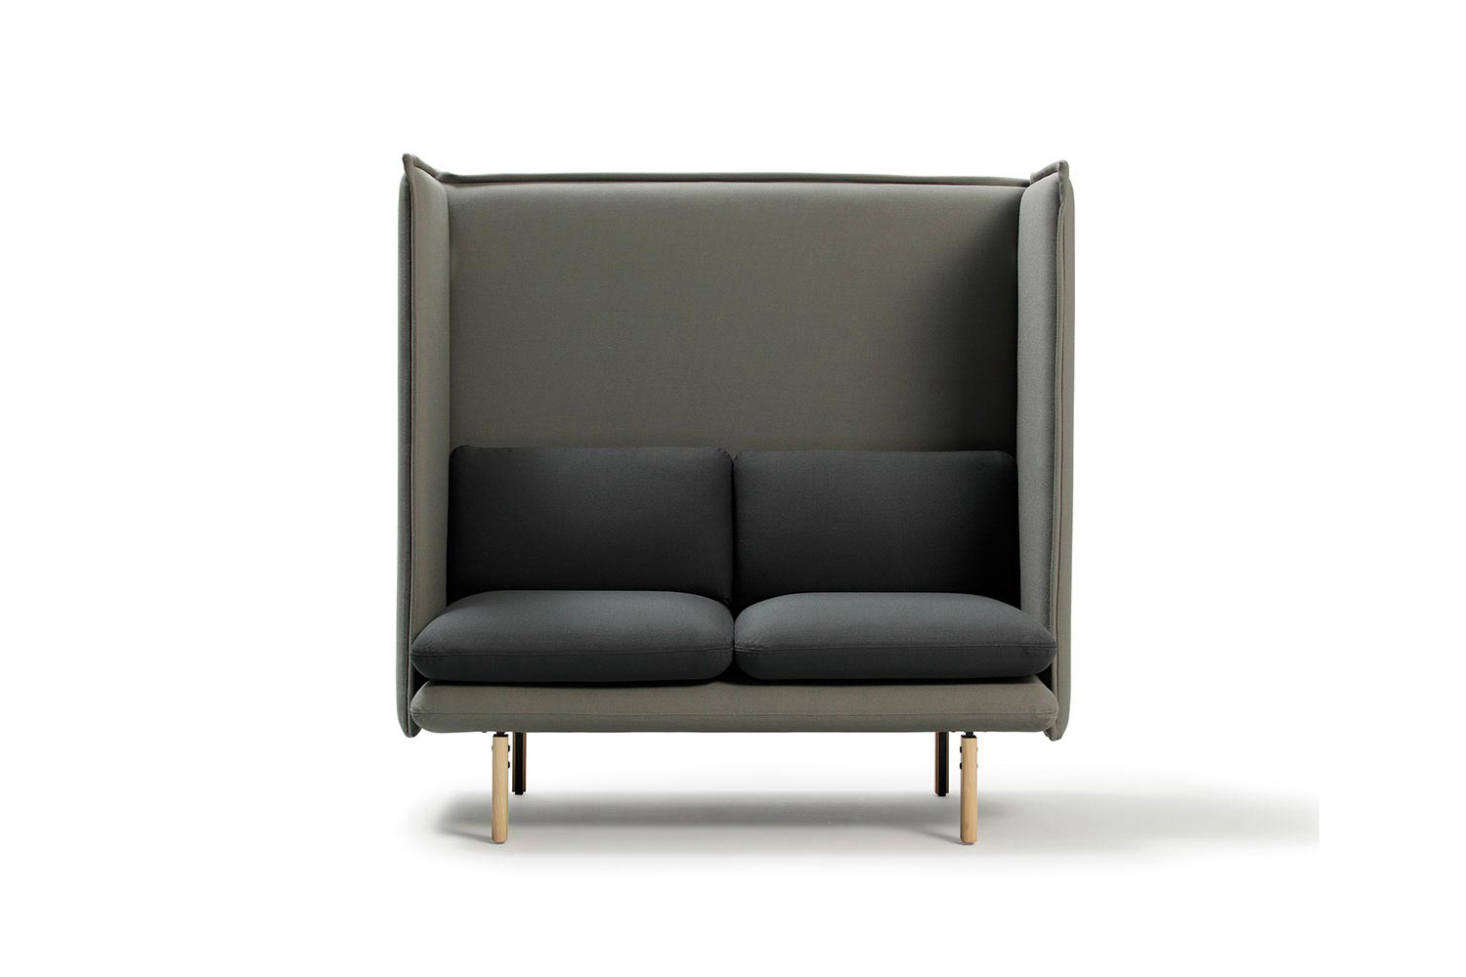 "Spanish company Sancal makes the REW Highback Sofa as a single two-seater (shown), and three-seater bench. The sofa is made with an upholstered seat and high frame to ""provide some privacy,"" with lacquered steel or ash feet. Prices start from €1,595.99 at Domestico Shop or ordered directly from Sancal in Spain."